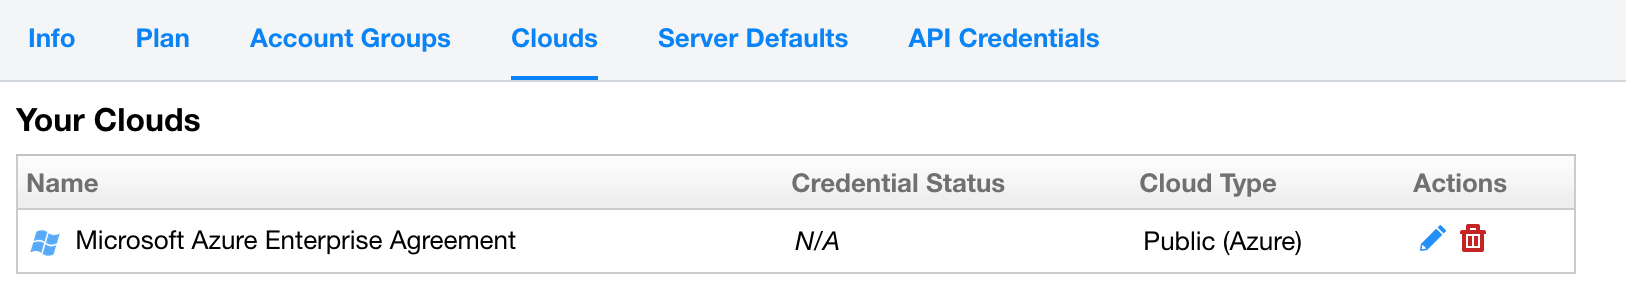 ca-connect-for-cost-cloud-credential-status.png